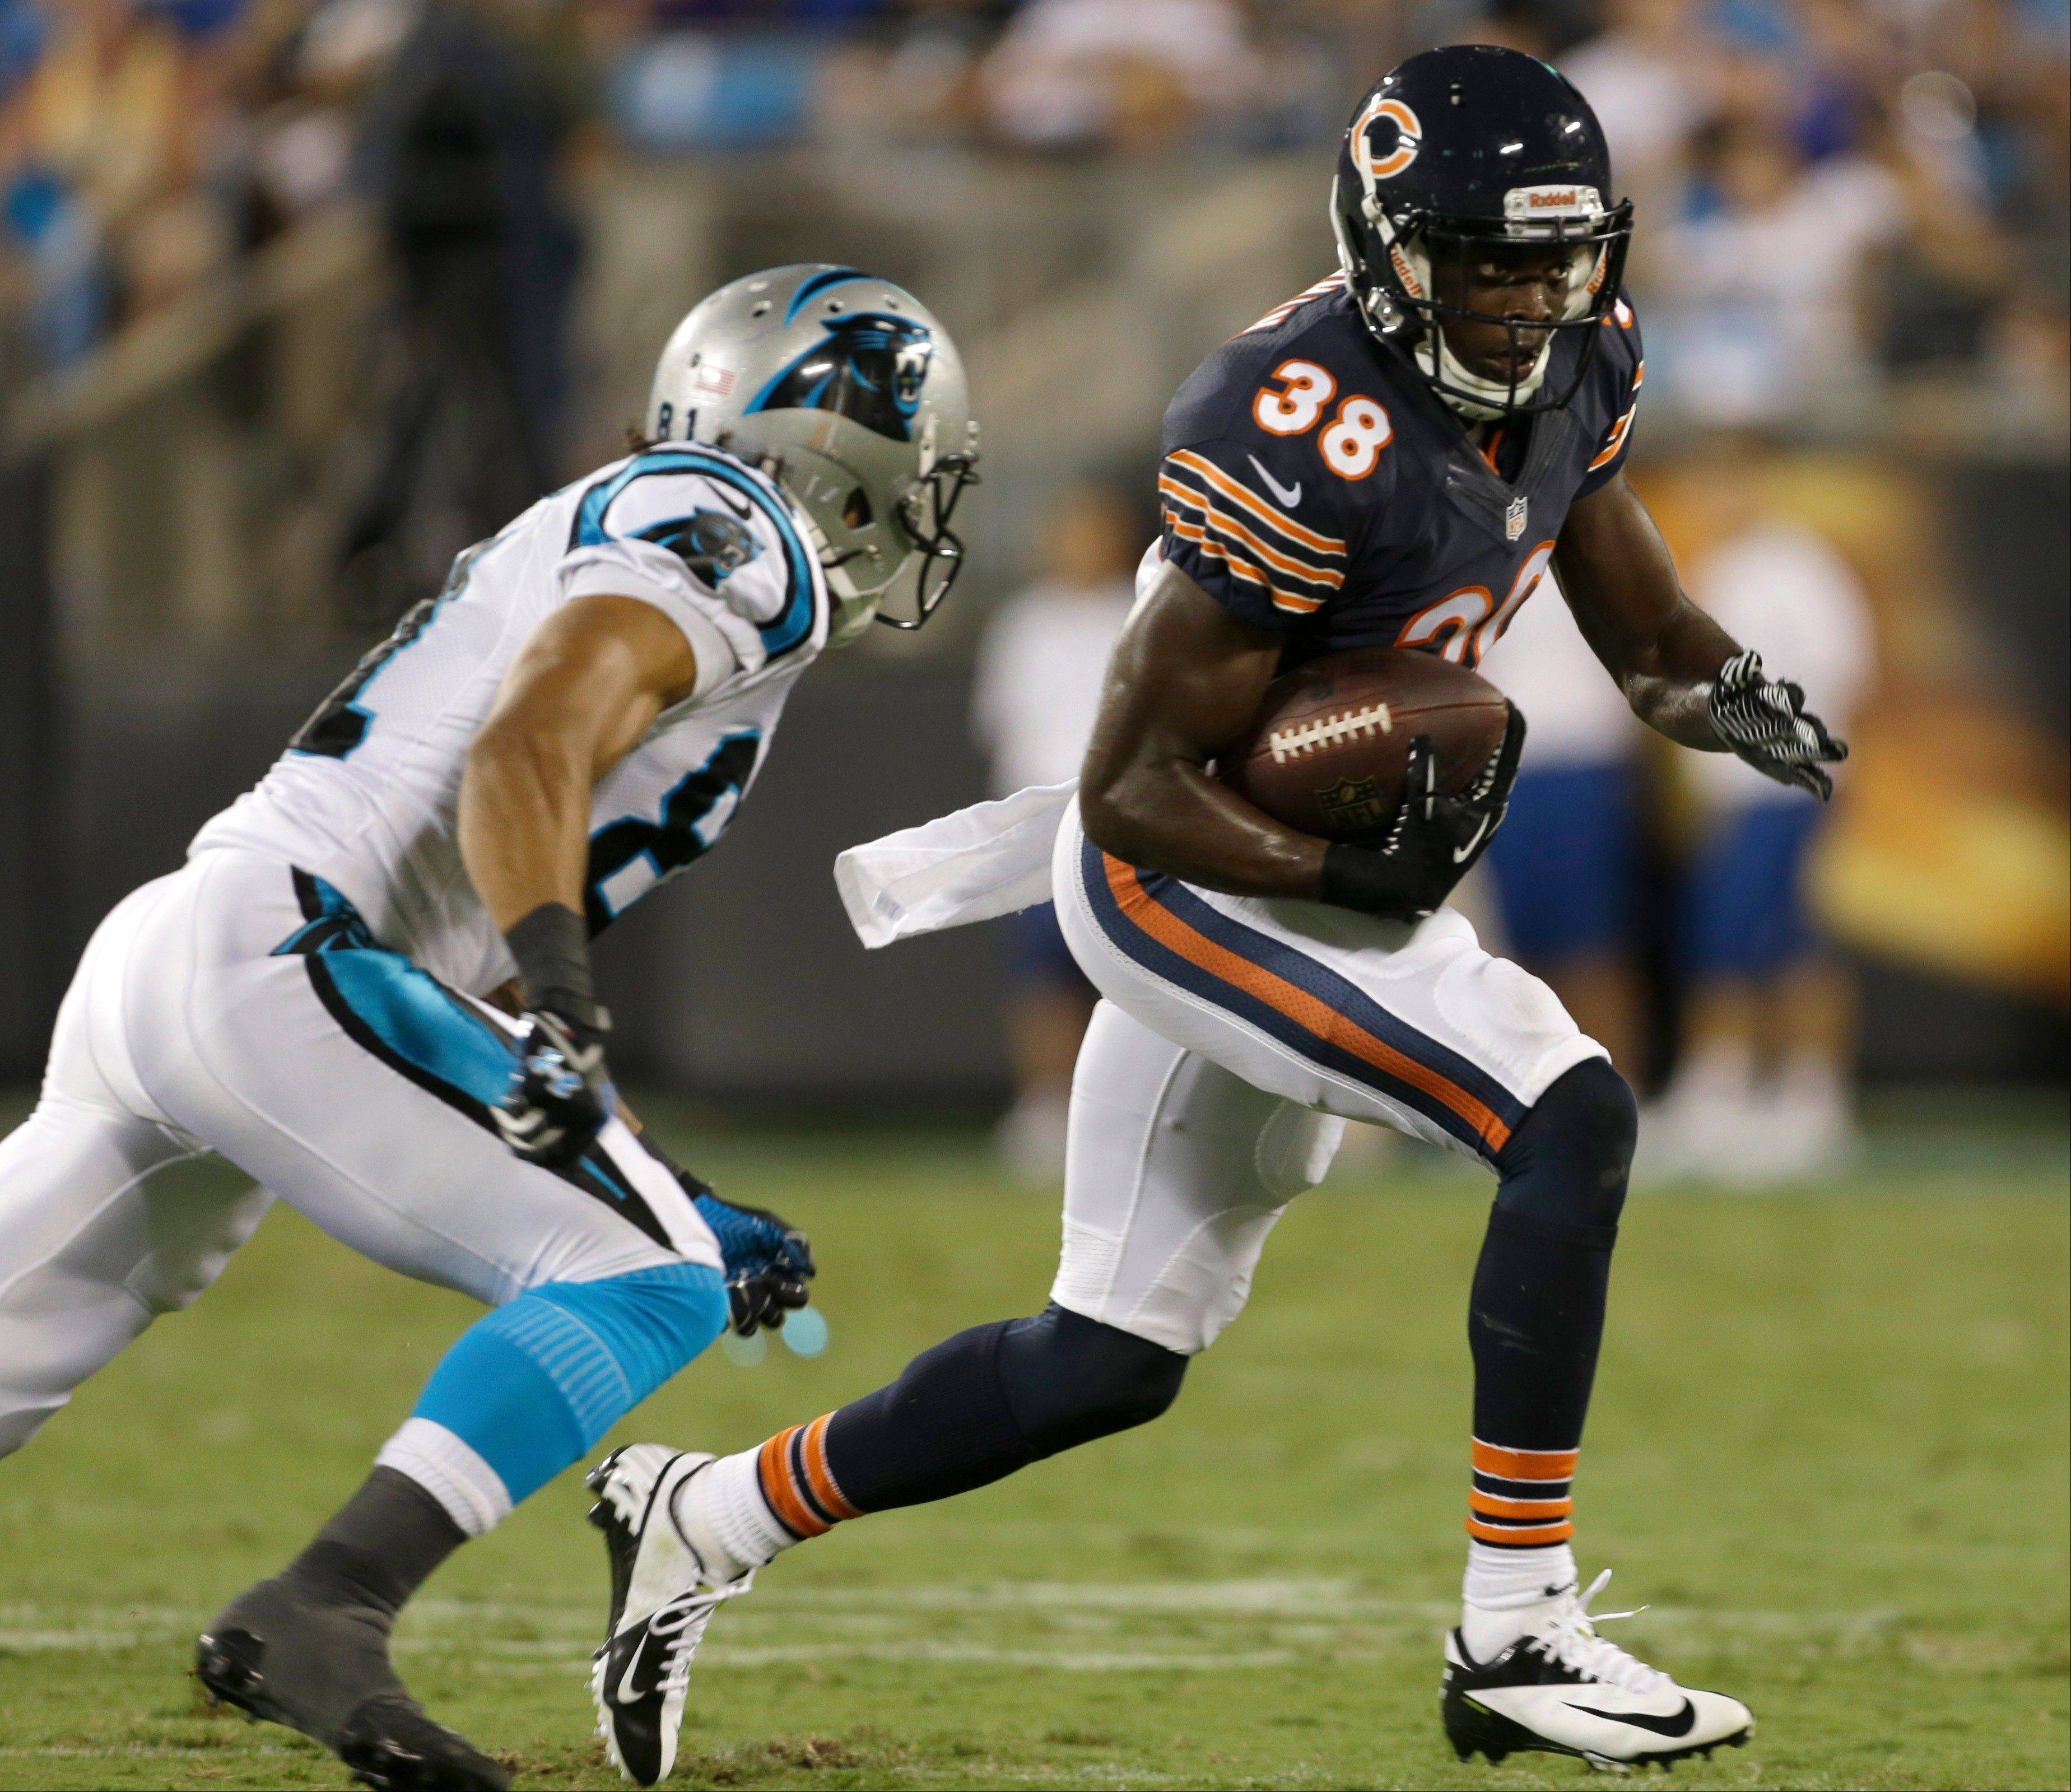 Chicago Bears' Zack Bowman (38) returns an interception against Carolina Panthers' Kealoha Pilares during the first half of a preseason NFL football game in Charlotte, N.C., Friday, Aug. 9, 2013.